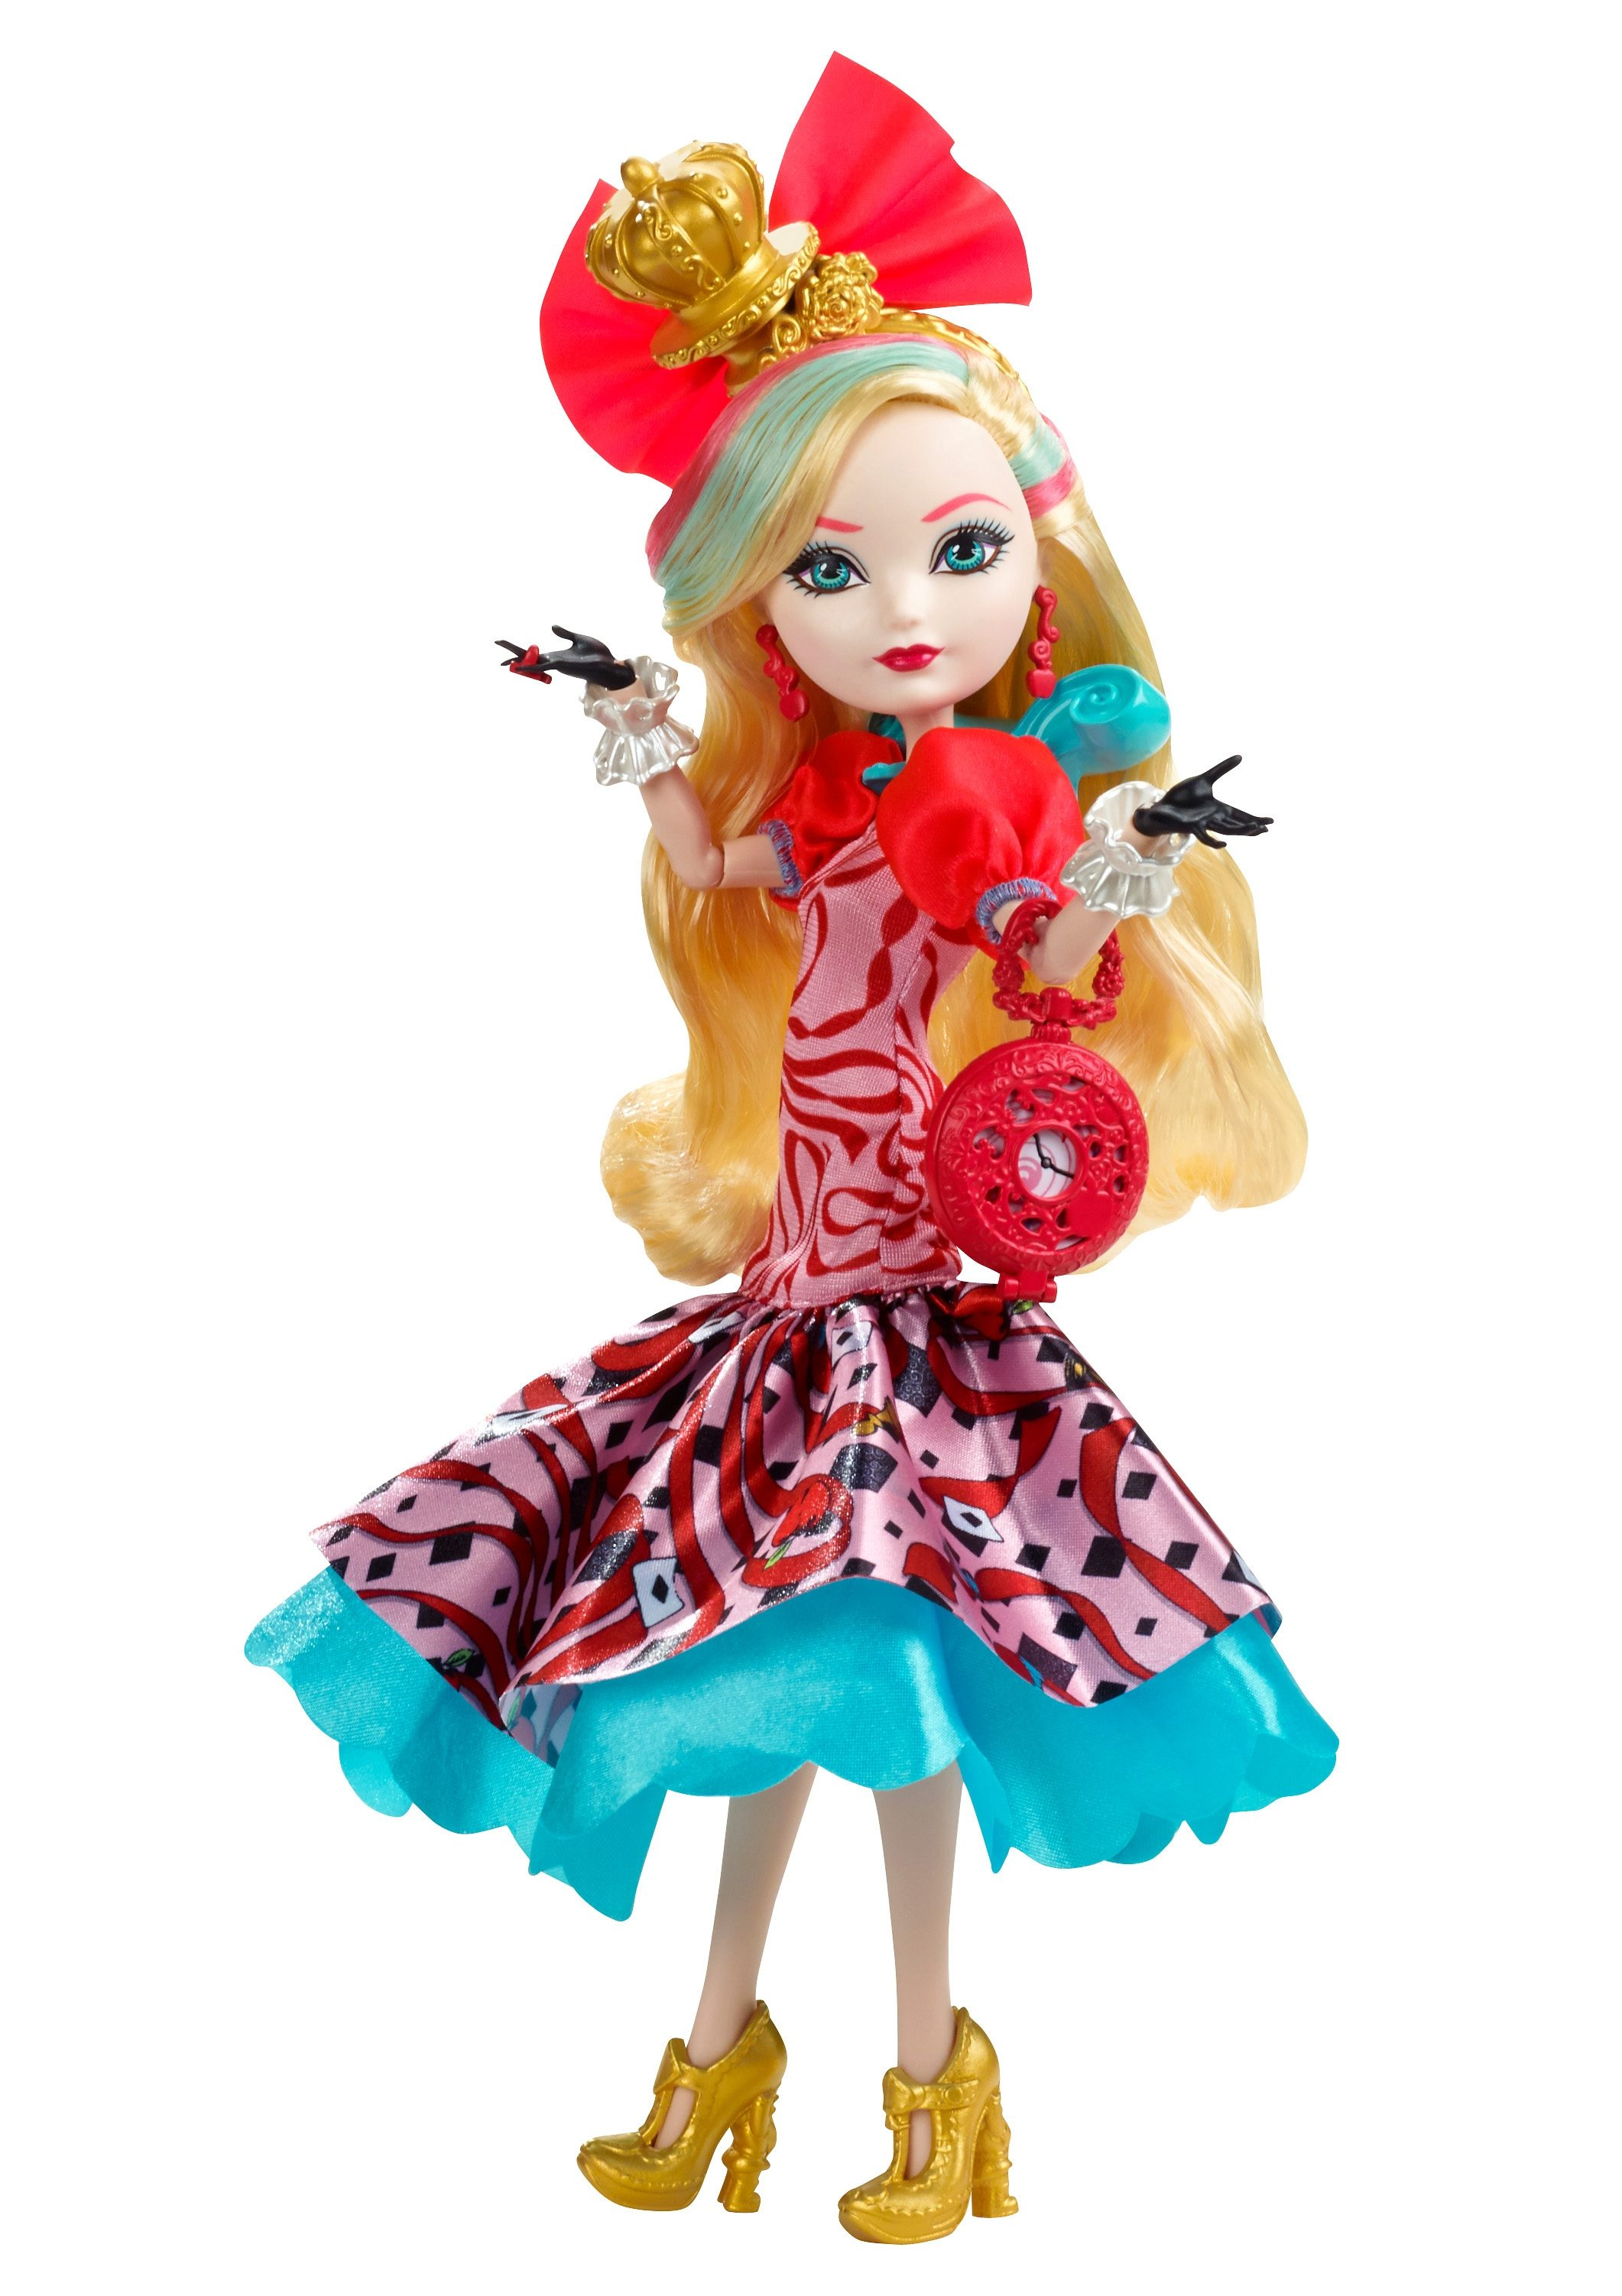 Mattel Puppe Ever After High, »Wunderland Apple White«